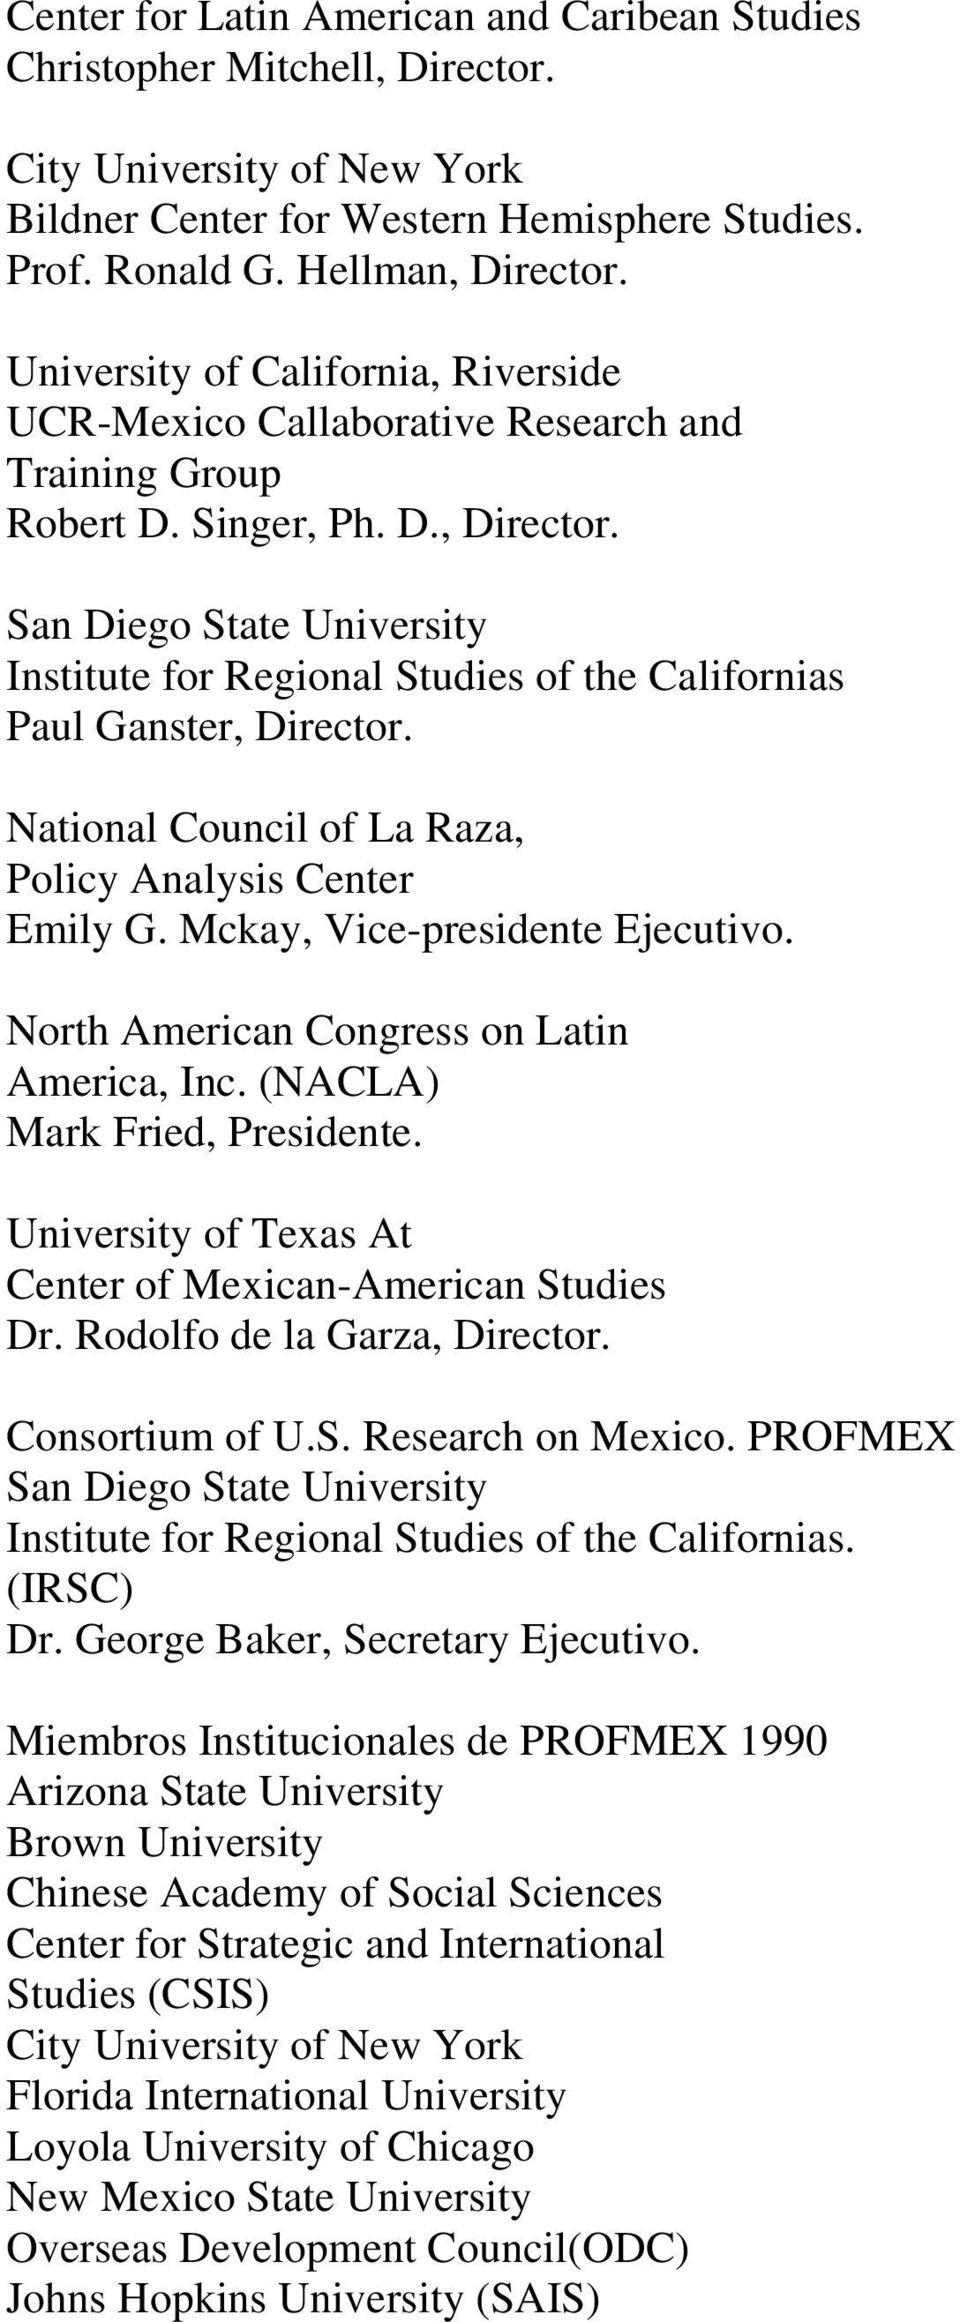 National Council of La Raza, Policy Analysis Center Emily G. Mckay, Vice-presidente Ejecutivo. North American Congress on Latin America, Inc. (NACLA) Mark Fried, Presidente.